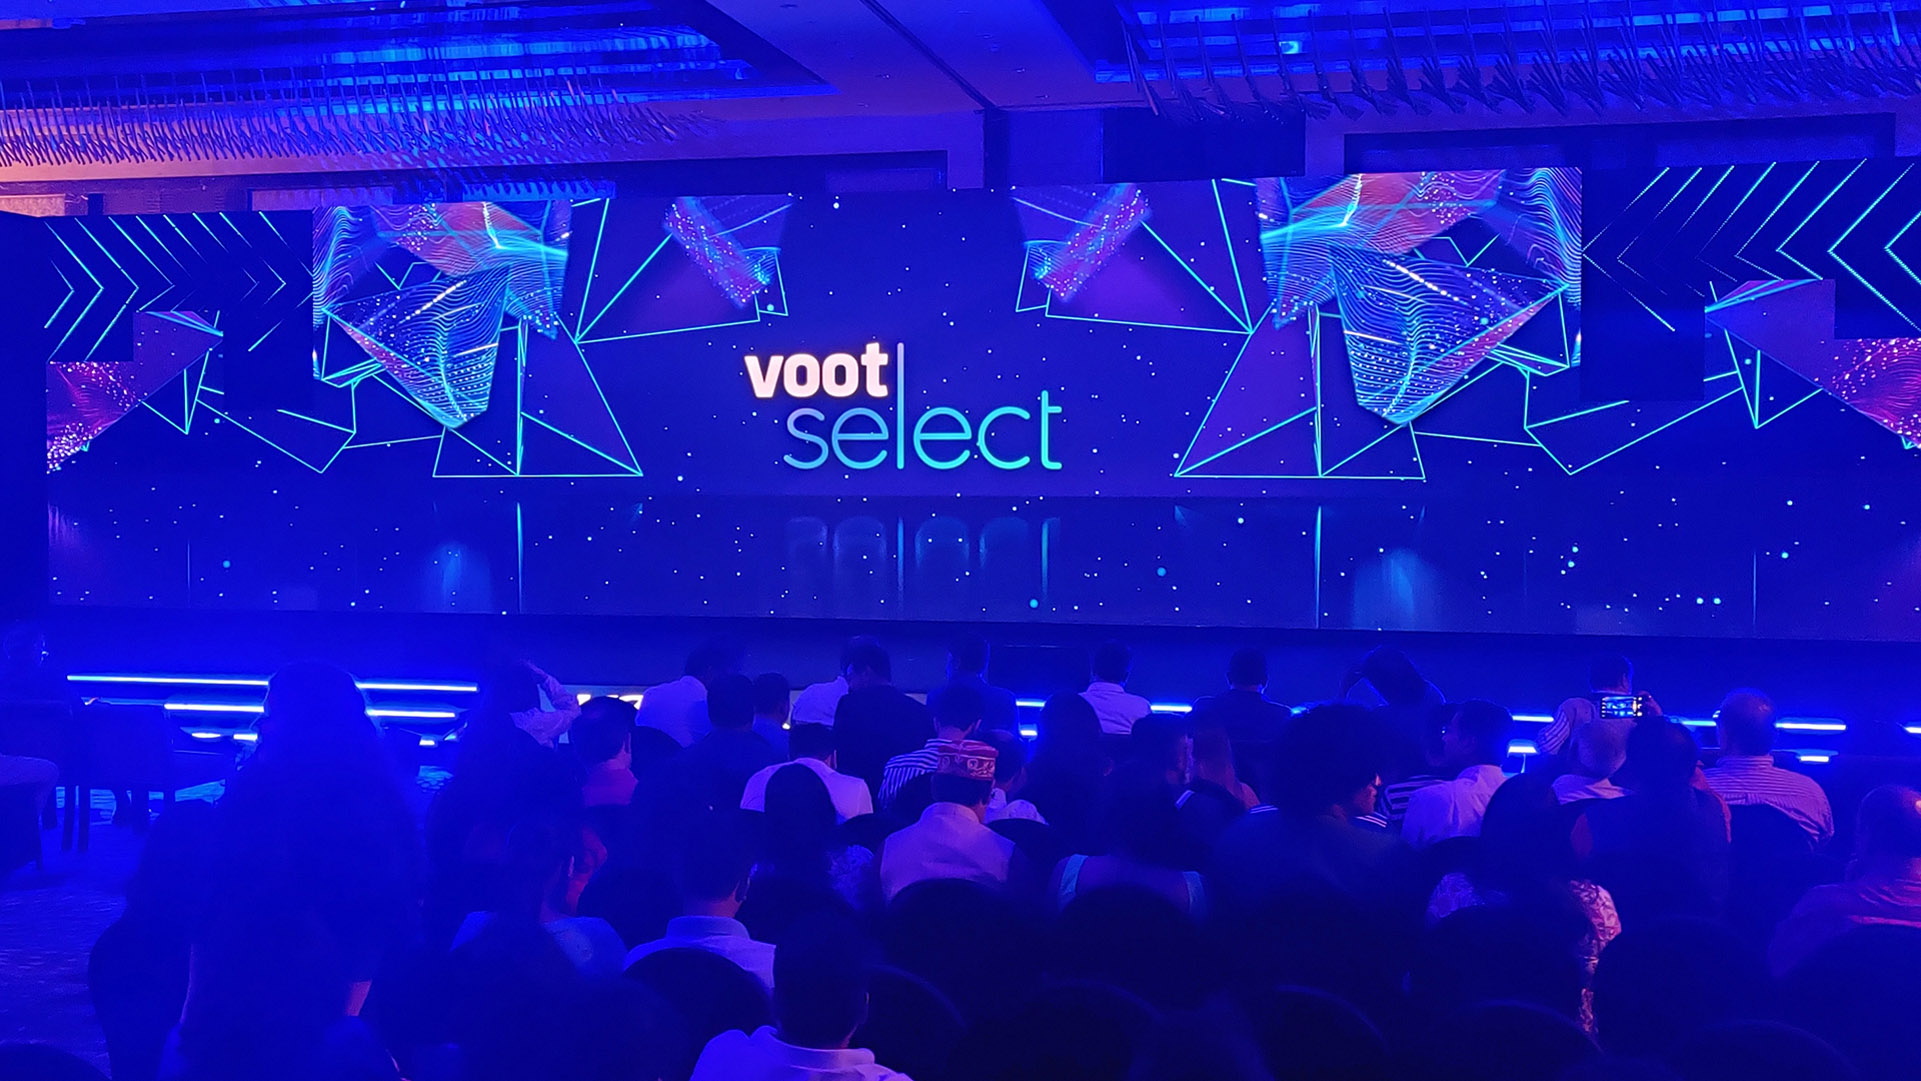 VIACOM18 Voot Select Launch